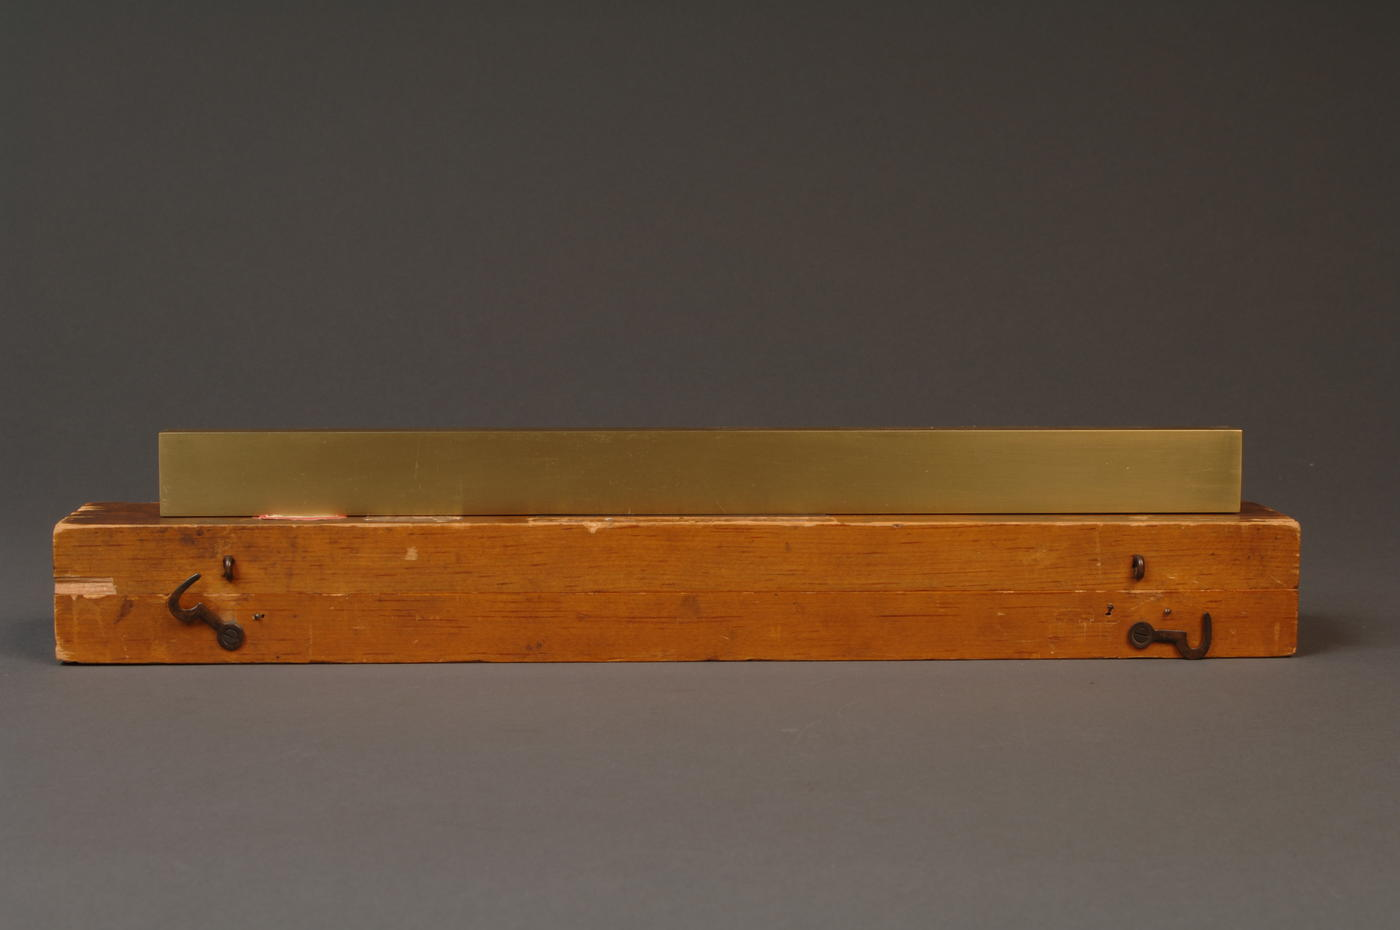 Brass line scale sitting on top of wooden box